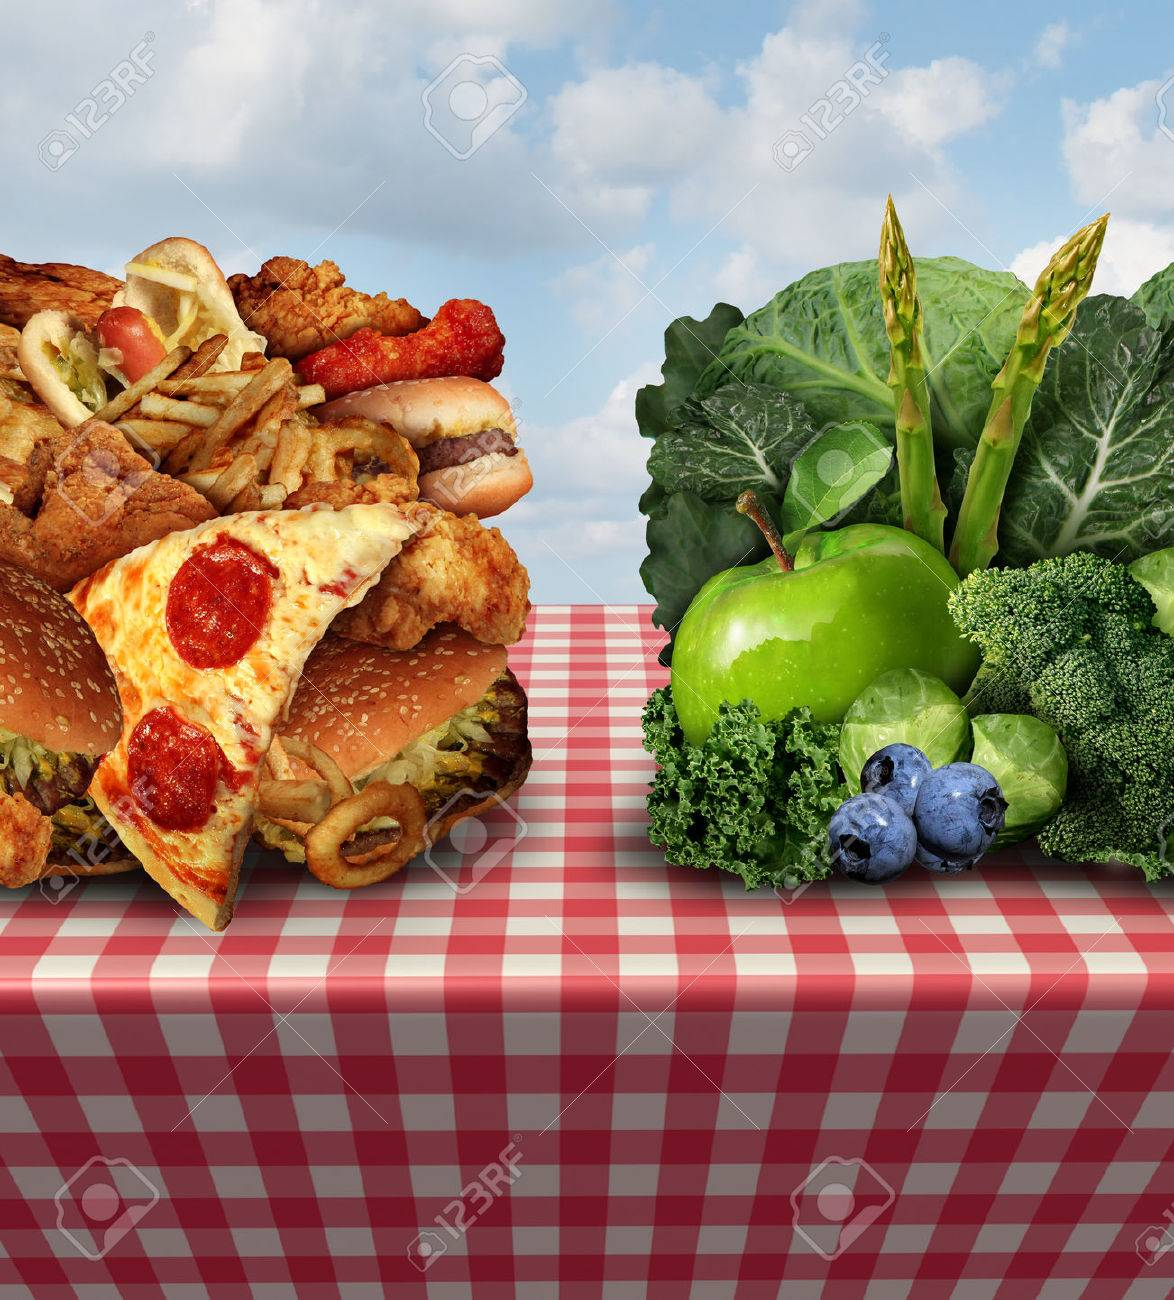 Healthy living concept and diet decision symbol or nutrition choices dilemma between healthy good fresh fruit and vegetables or greasy cholesterol rich fast food on a picnic table with a cloth trying to decide what to eat. - 34185482